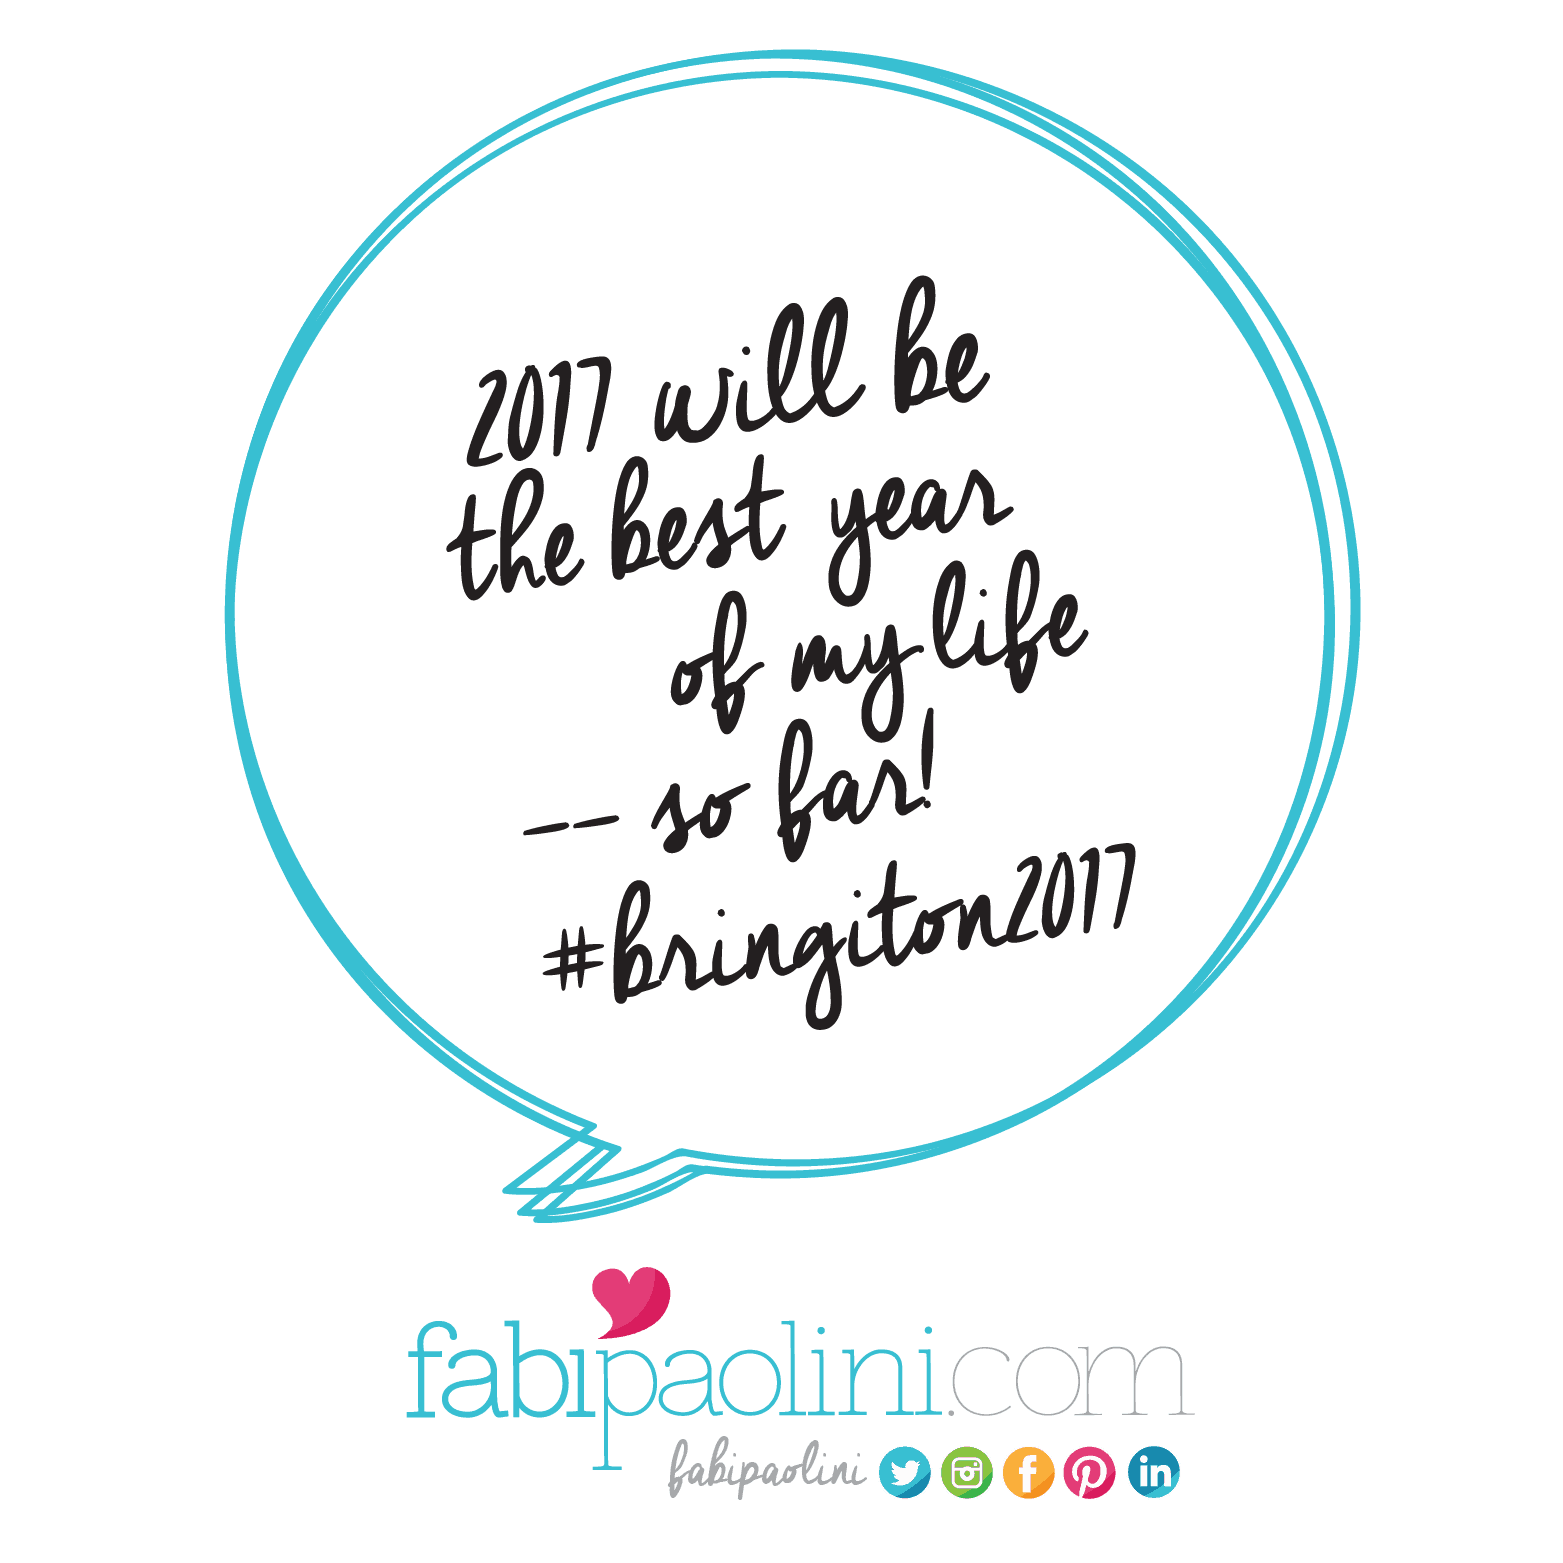 2017 will be the best year of my life -- so far! Inspiring + motivational quotes. Fabi Paolini